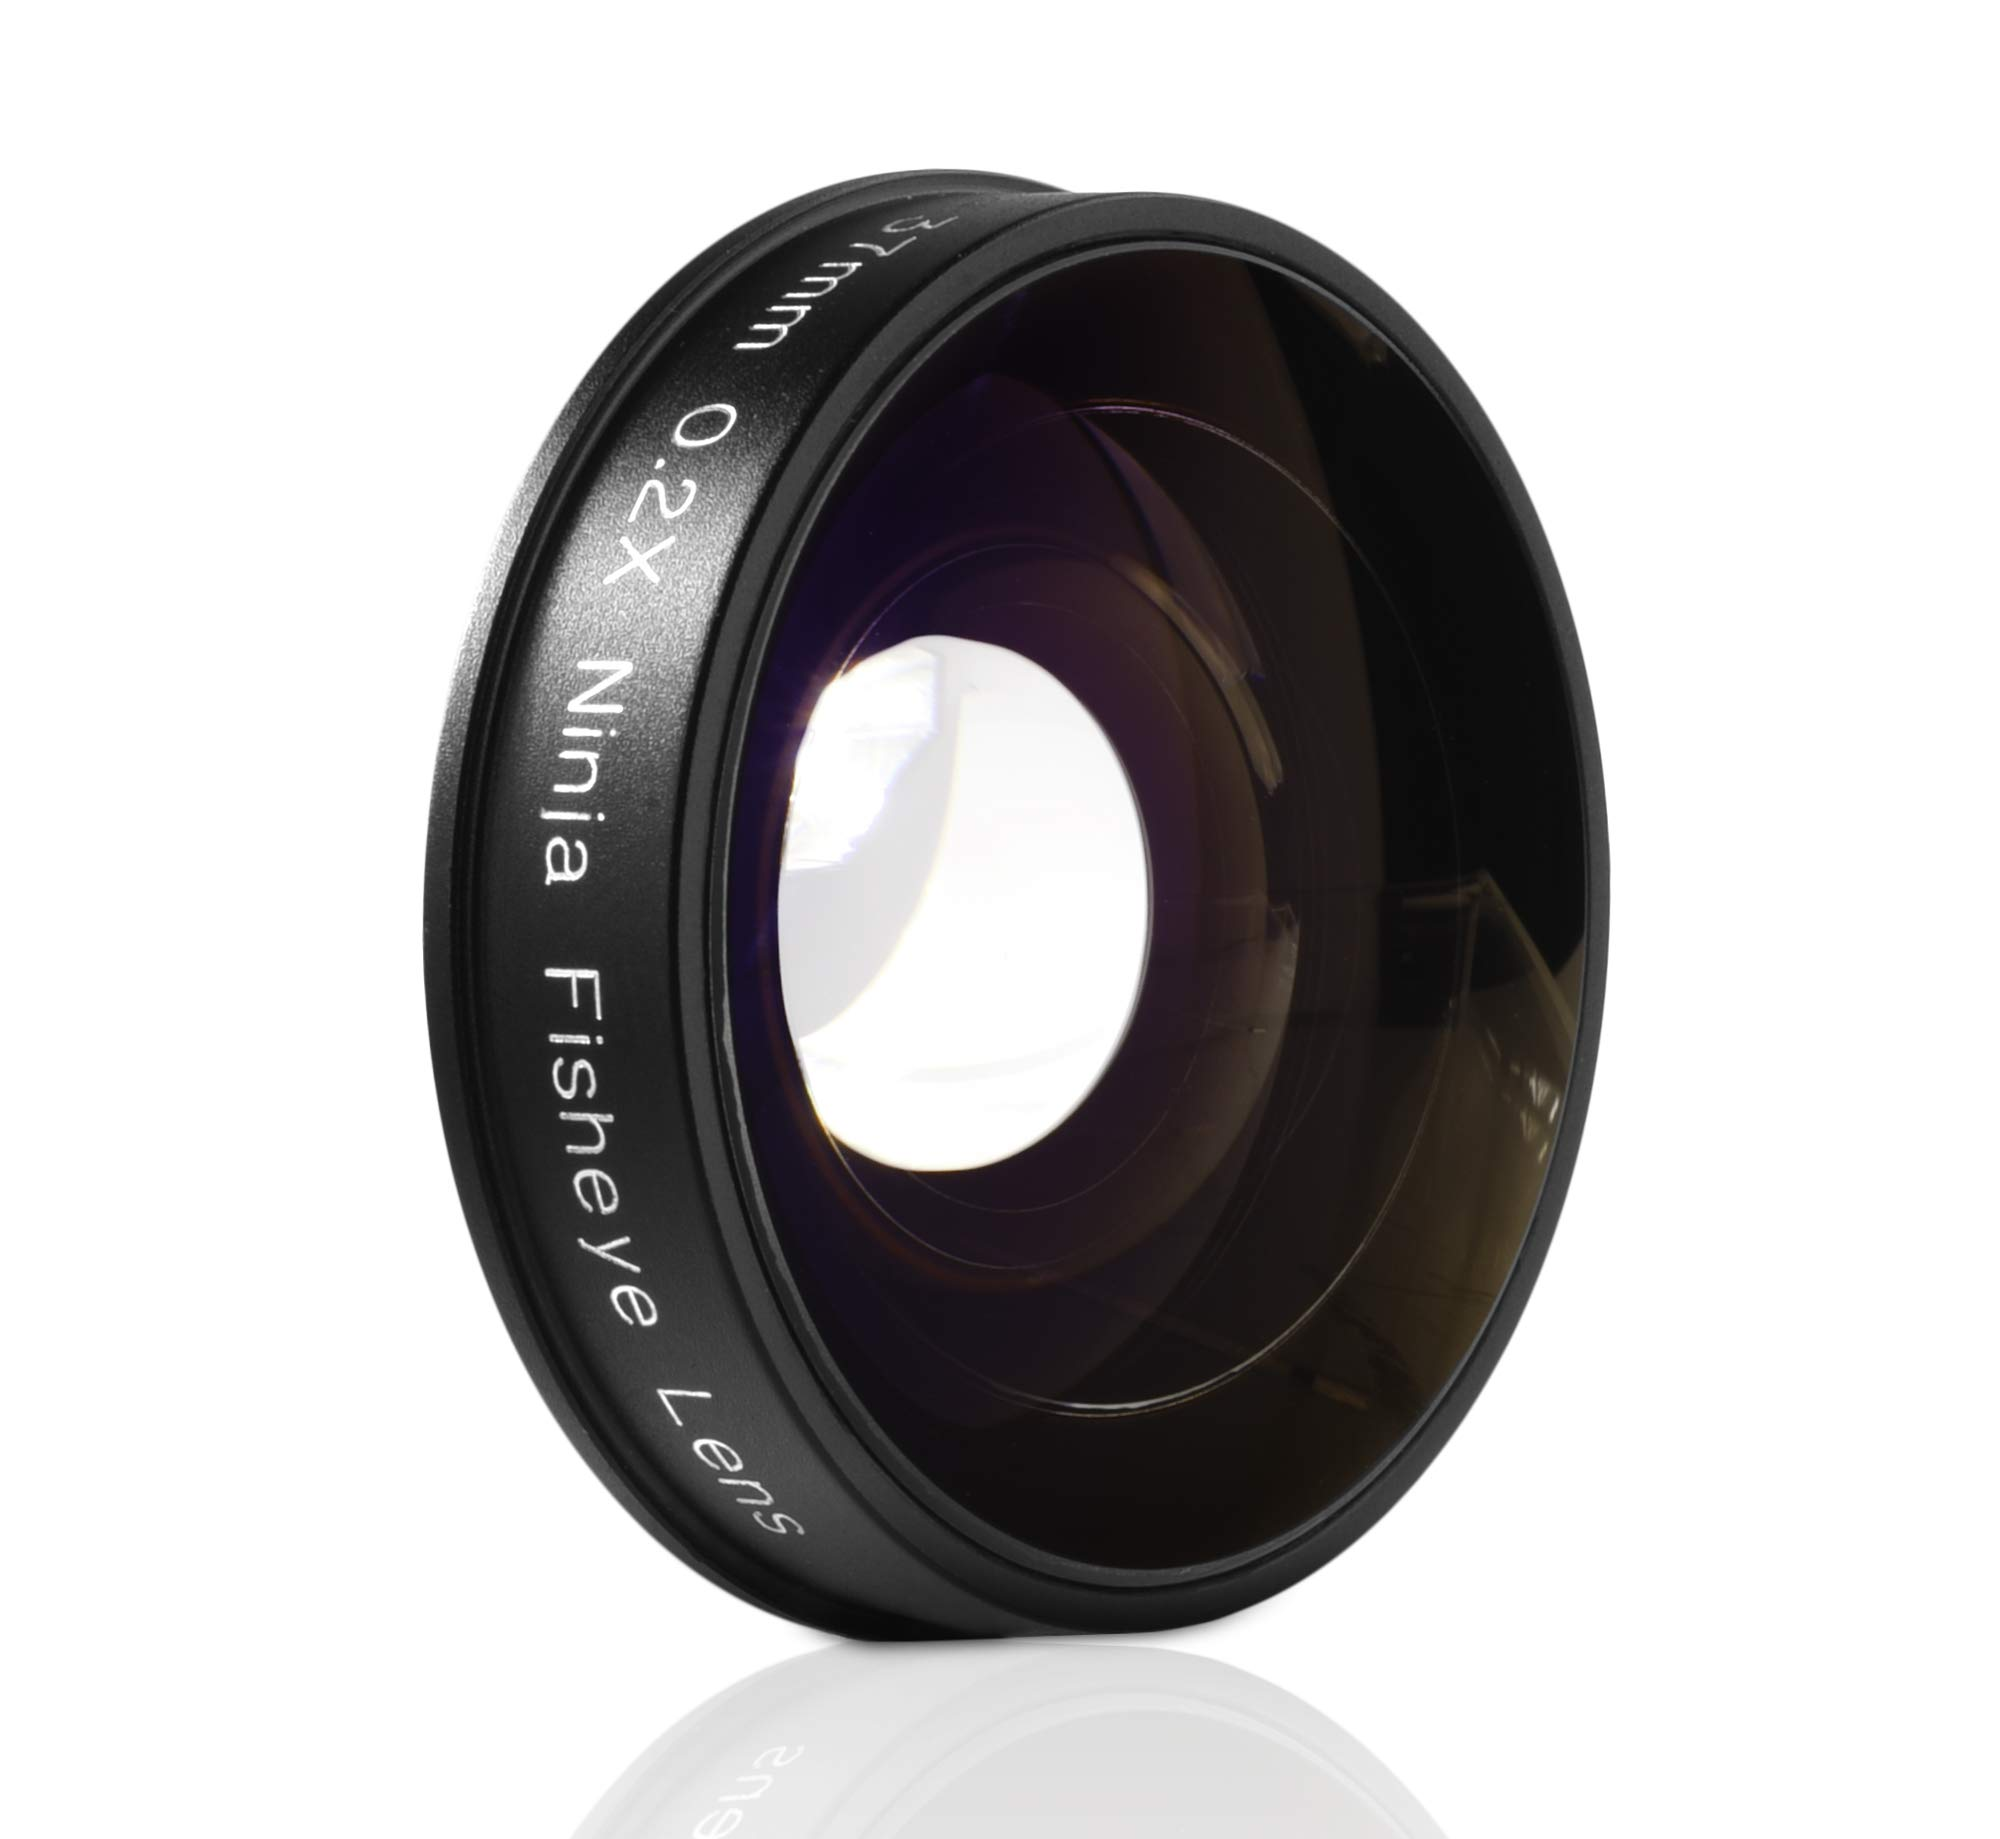 Opteka Platinum Series 0.2X Low-Profile HD Ultra Wide Fisheye Lens for Canon, Sony, JVC Video Cameras with 37mm Threads by Opteka